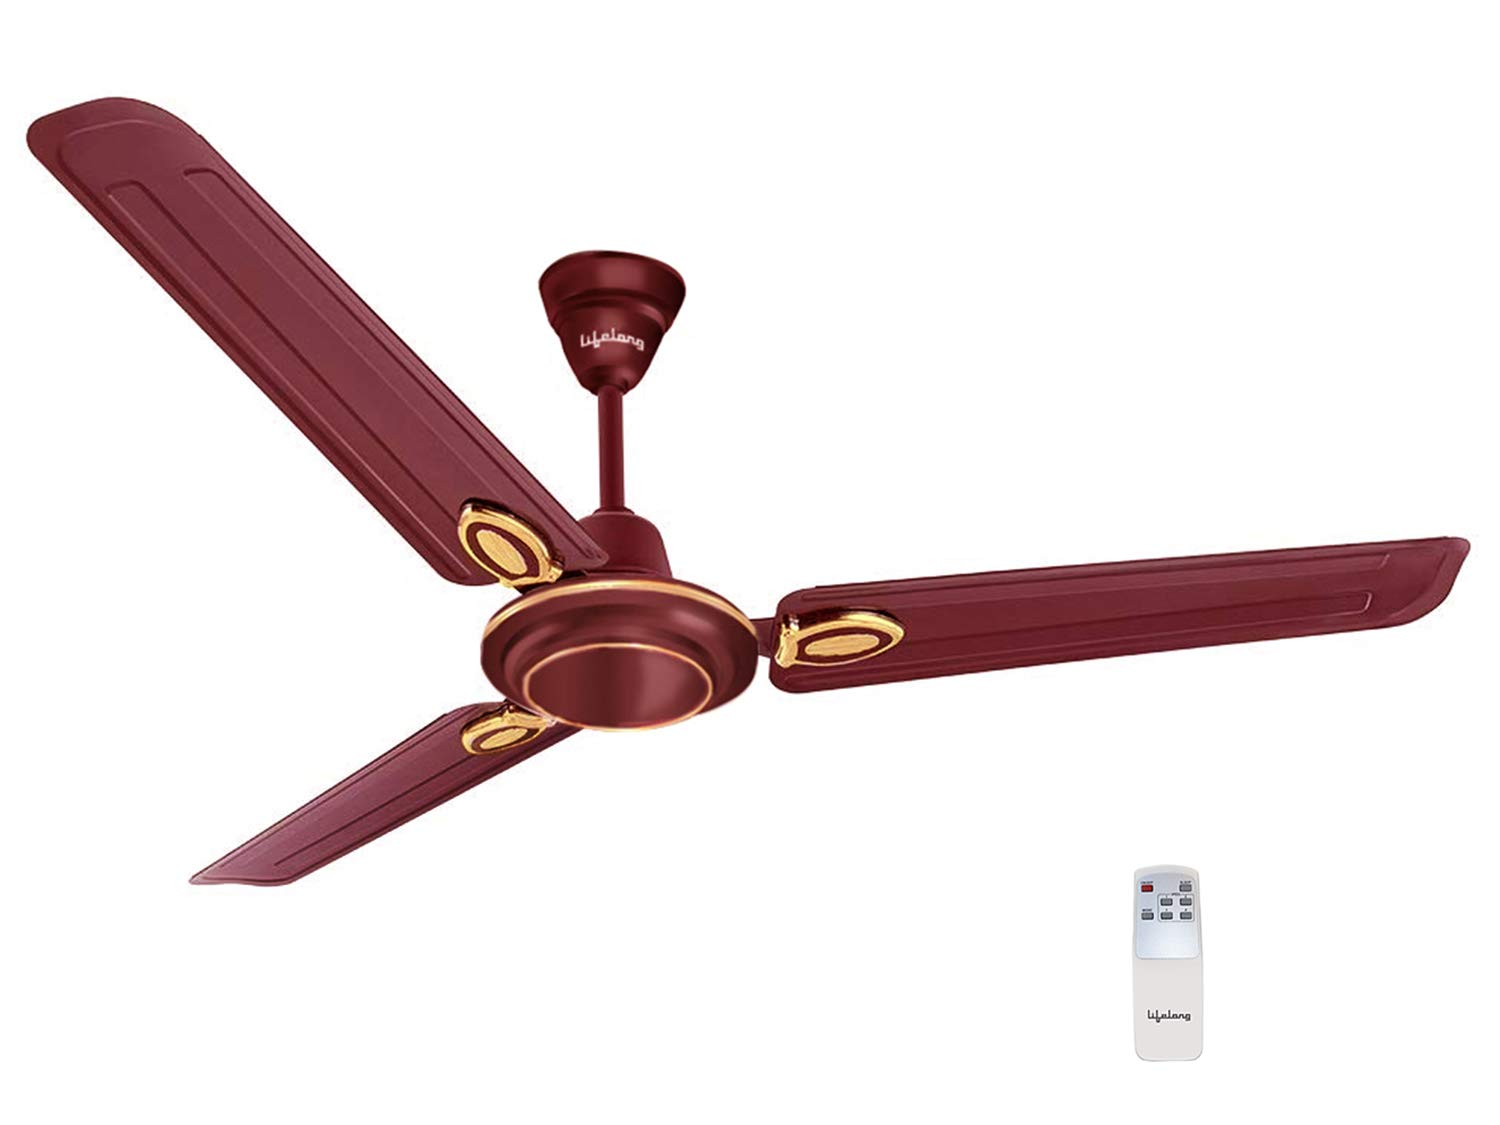 Lifelong Glide 1200 mm Semi-Décor Ceiling fan with Remote (Brown) | High Speed | 2 Year Warranty